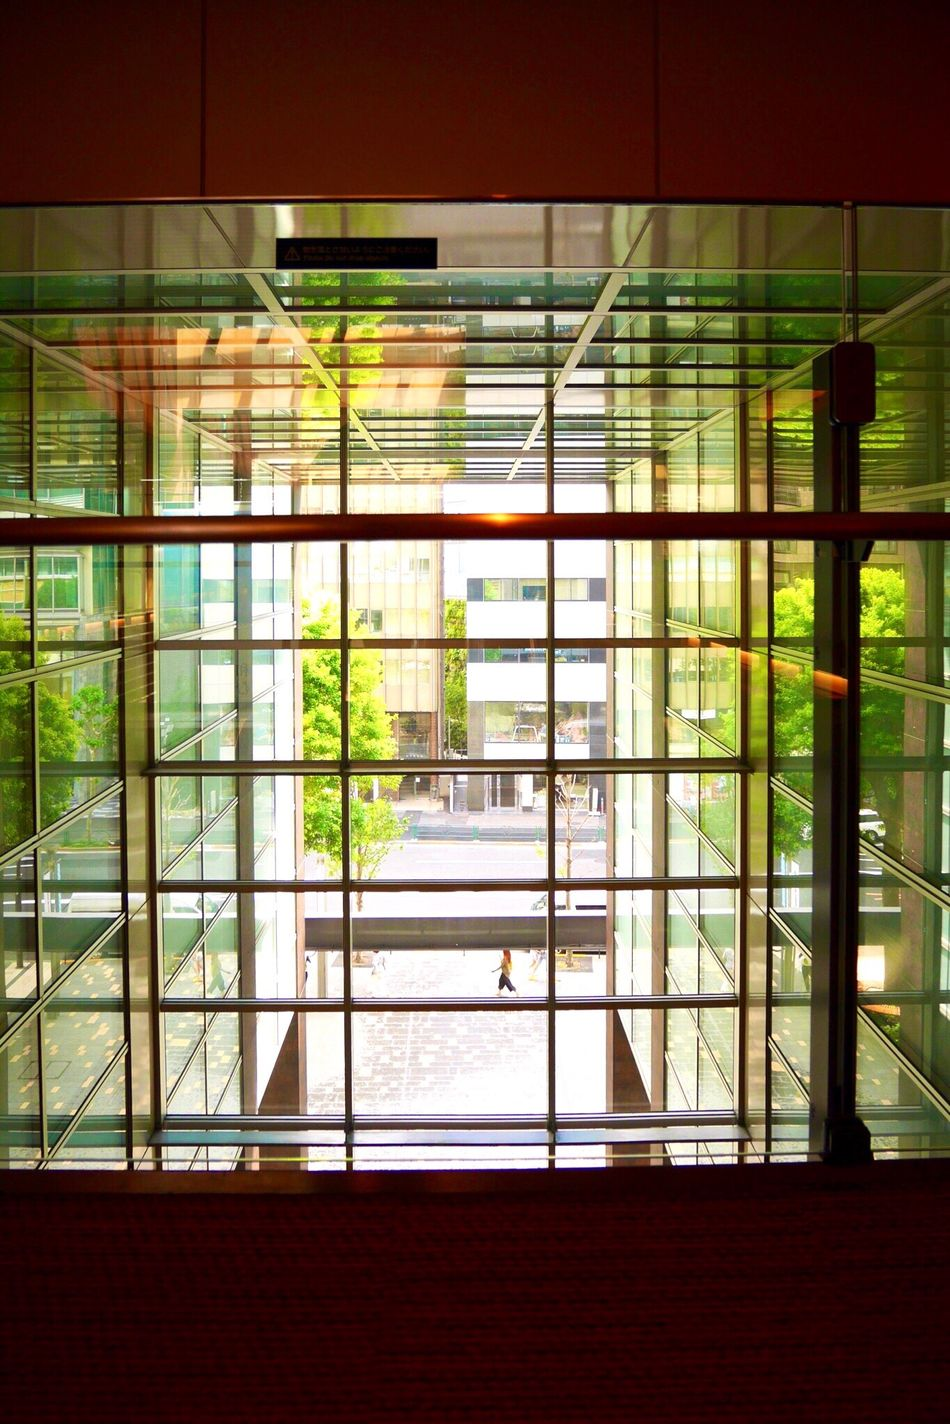 Finding New Frontiers Glass - Material Transparent Growth Green Color EyeEm Gallery EyeEm Best Shots 反射 Reflection Reflection_collection Adapted To The City The City Light